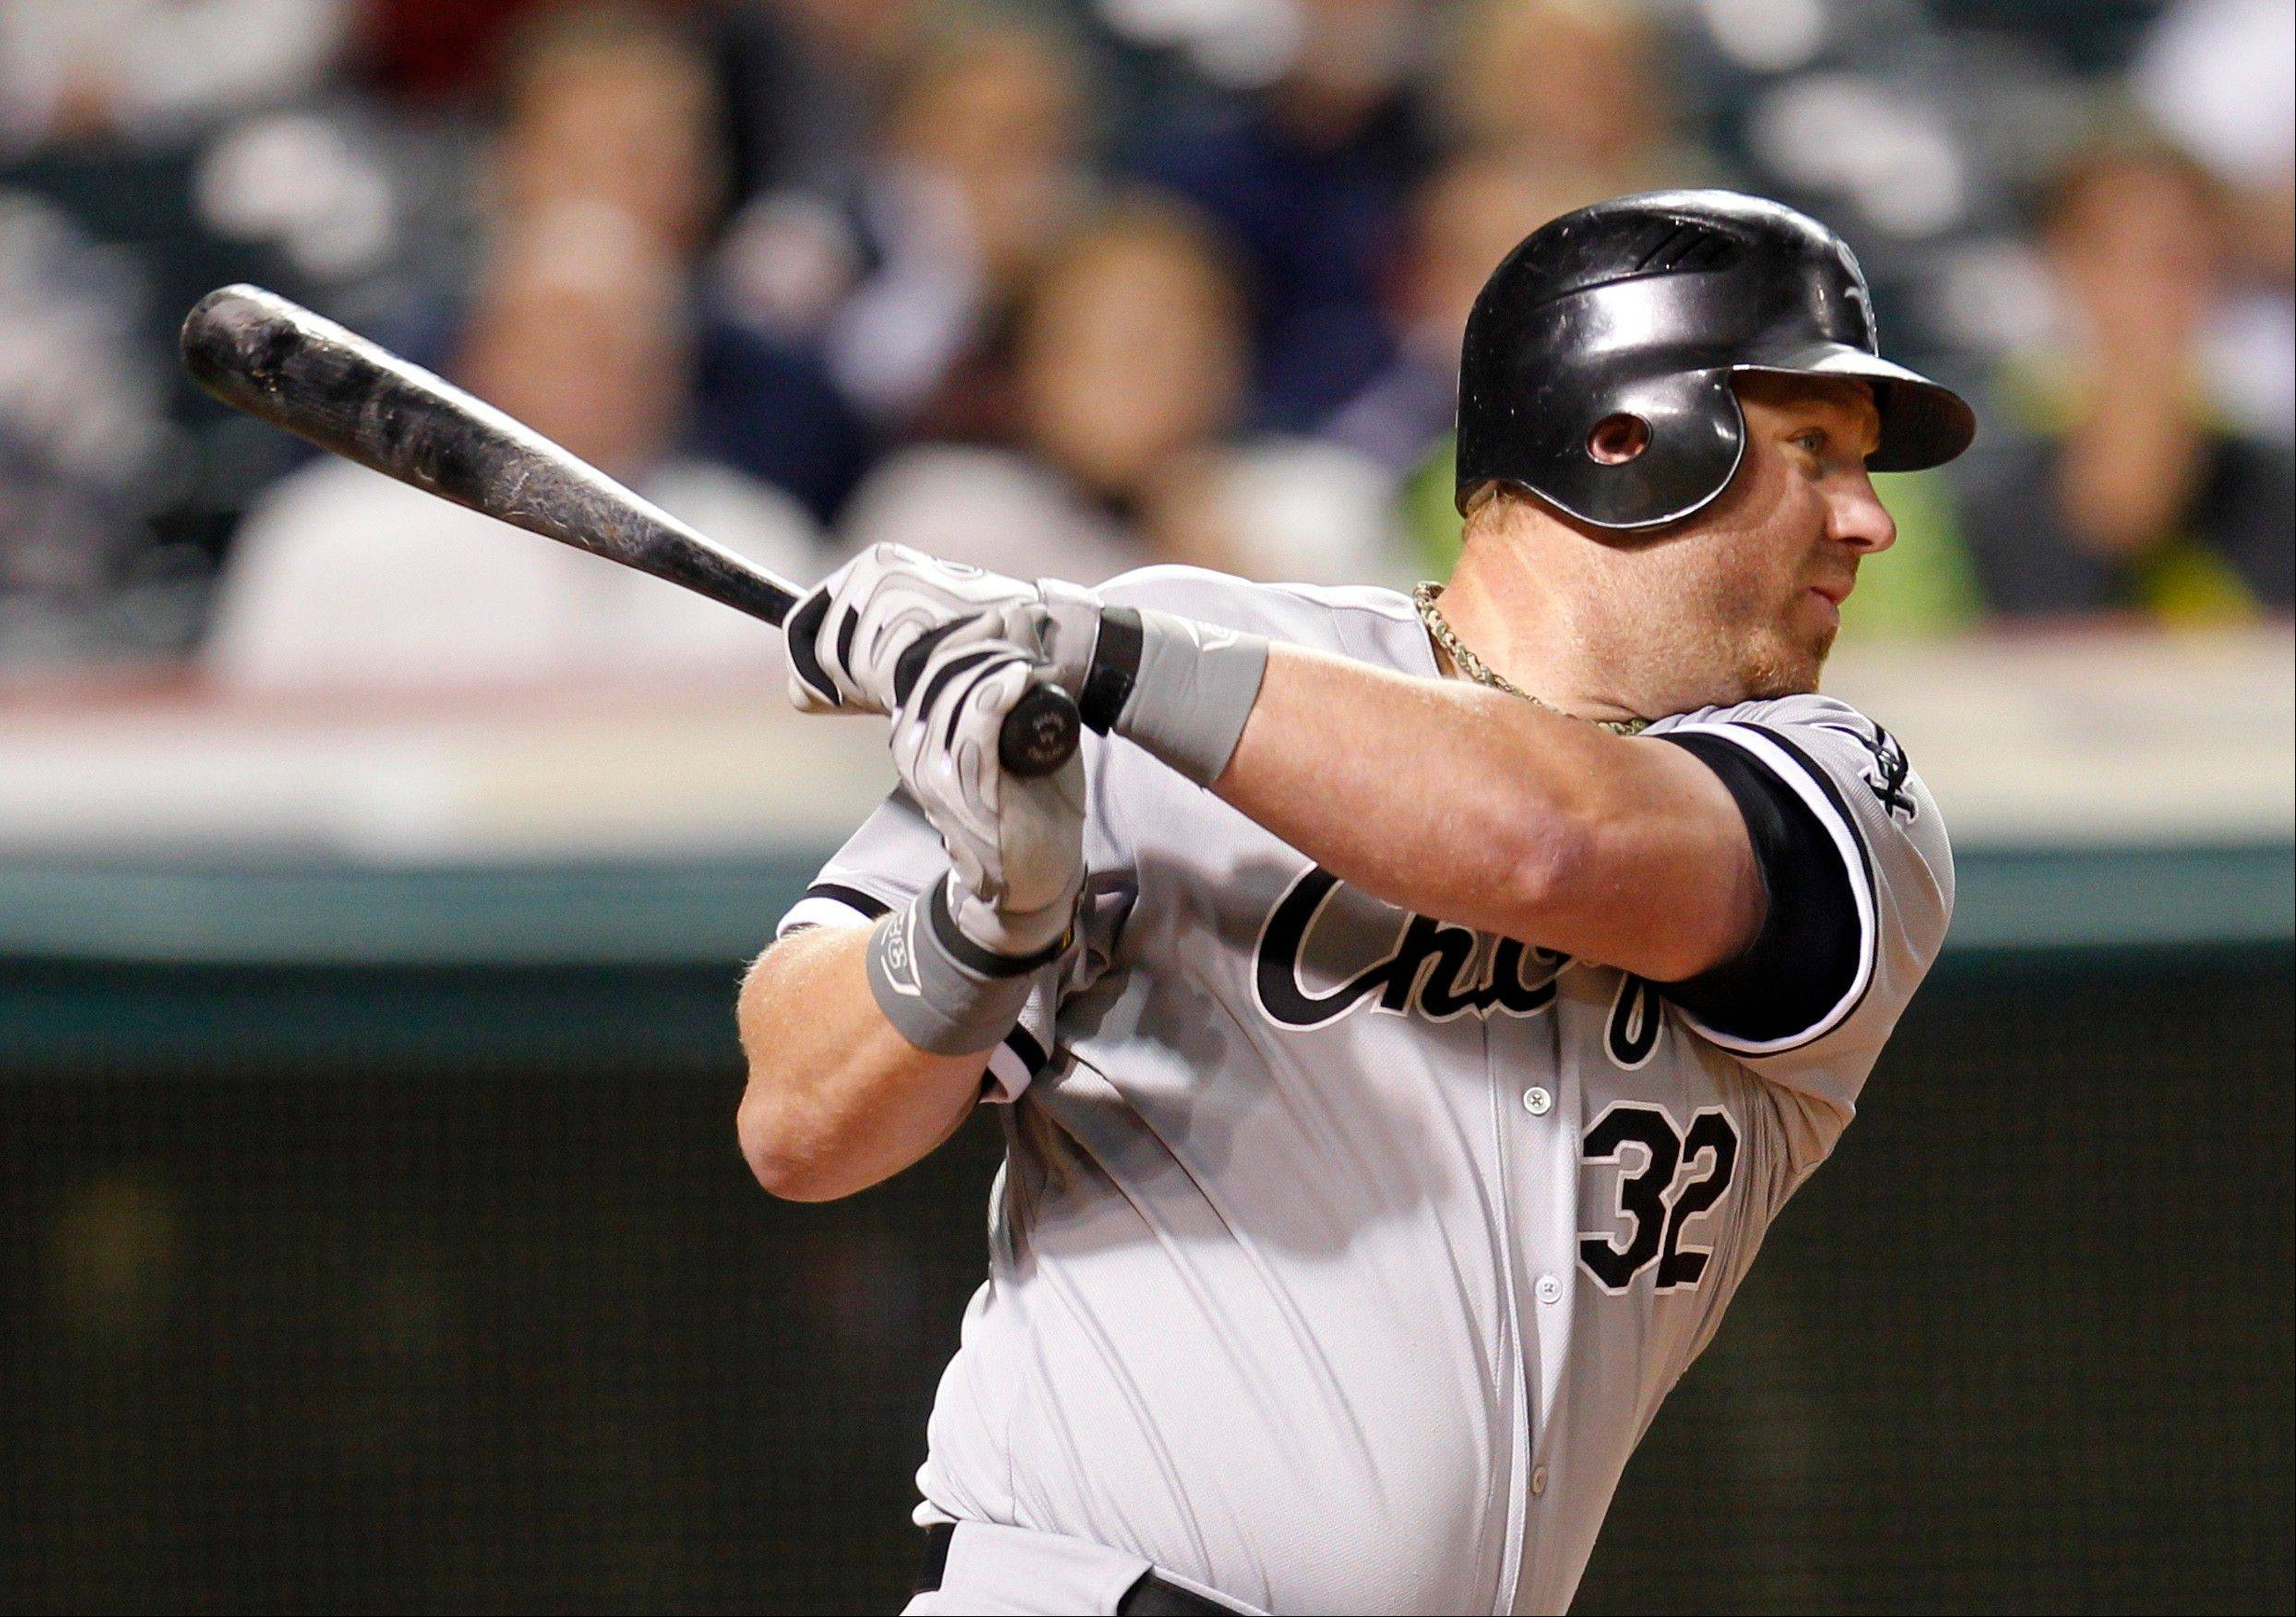 Adam Dunn (2-for-4) hits an RBI single in the sixth inning Monday in Cleveland. If Dunn strikes out three more times this season, he'll tie the record for most in a season (223).